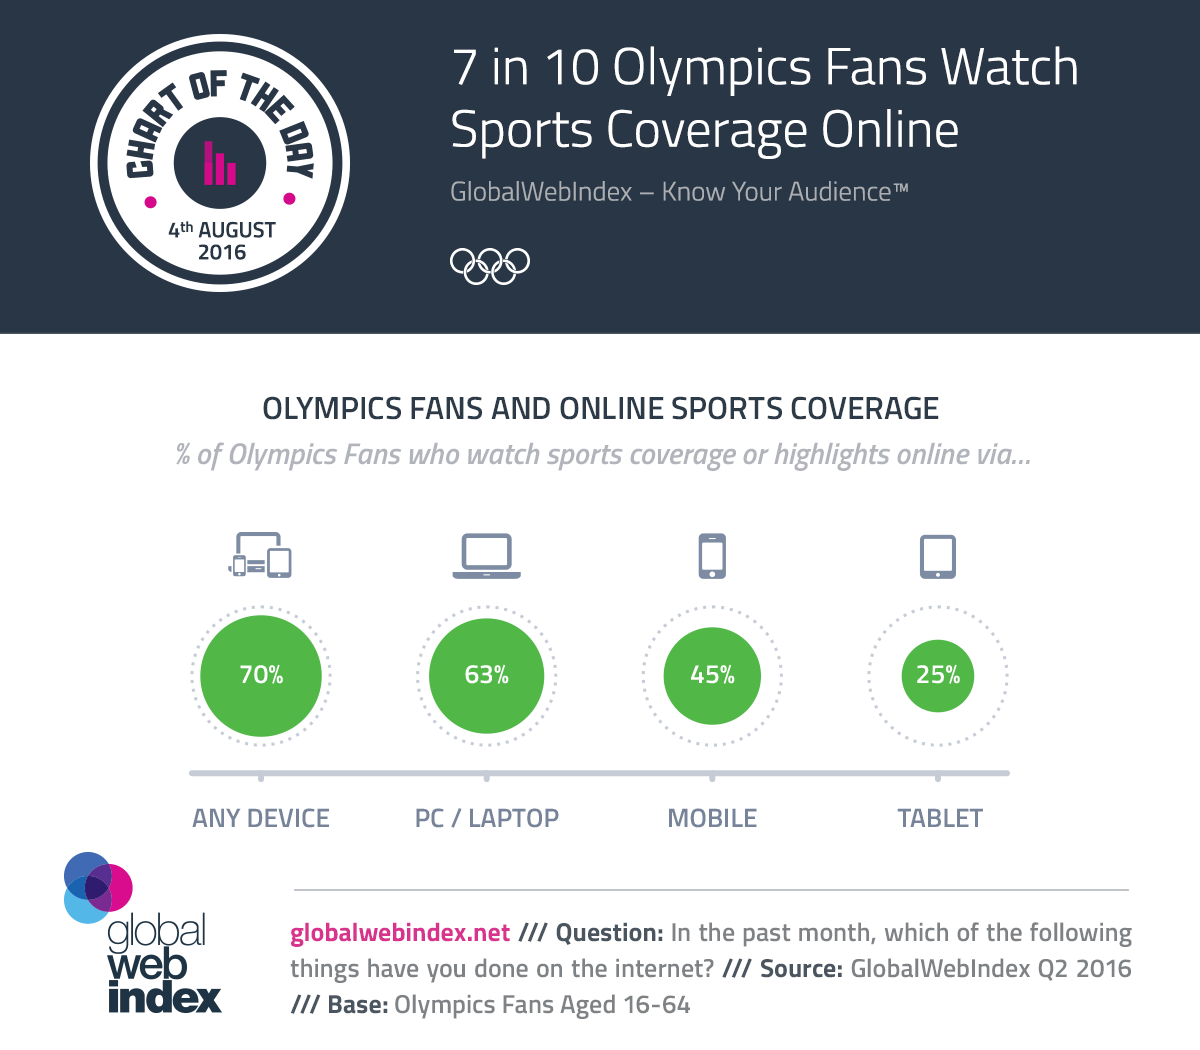 7 in 10 Olympics Fans Watch Sports Coverage Online